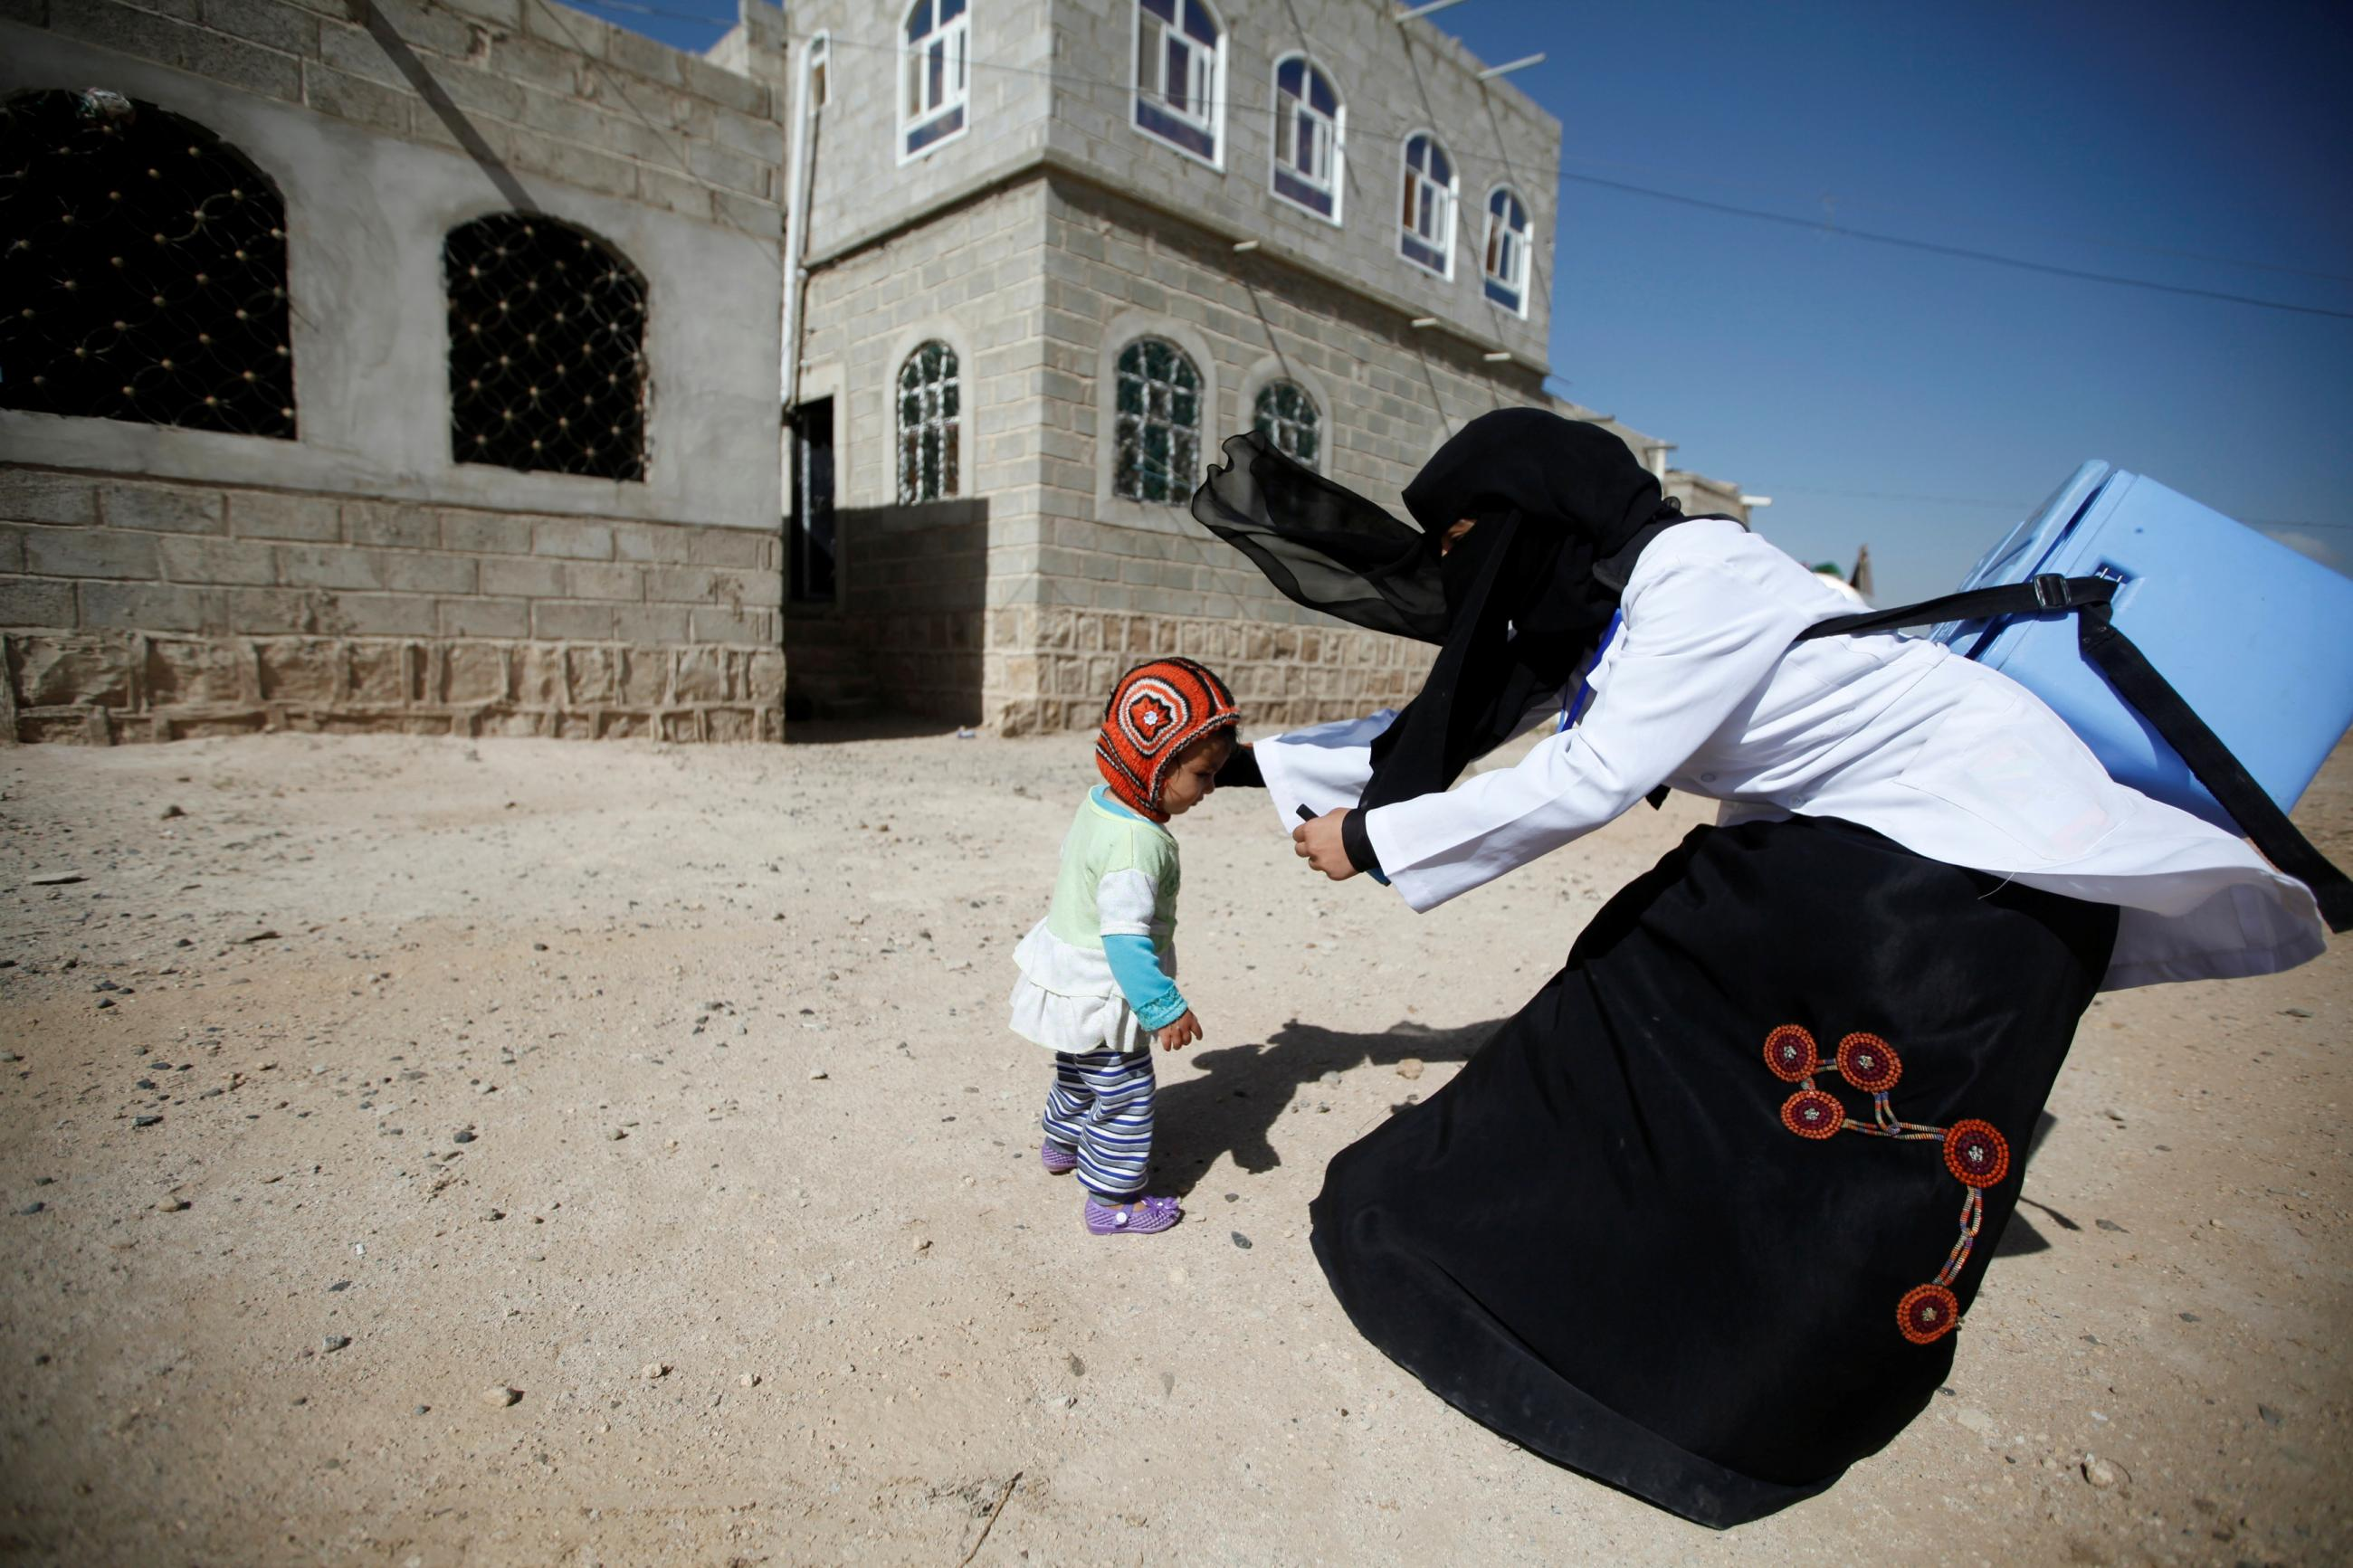 A health worker holds a girl to give her polio vaccination drops during a house-to-house anti-polio vaccination campaign in Yemen's capital Sanaa, April 12, 2016.